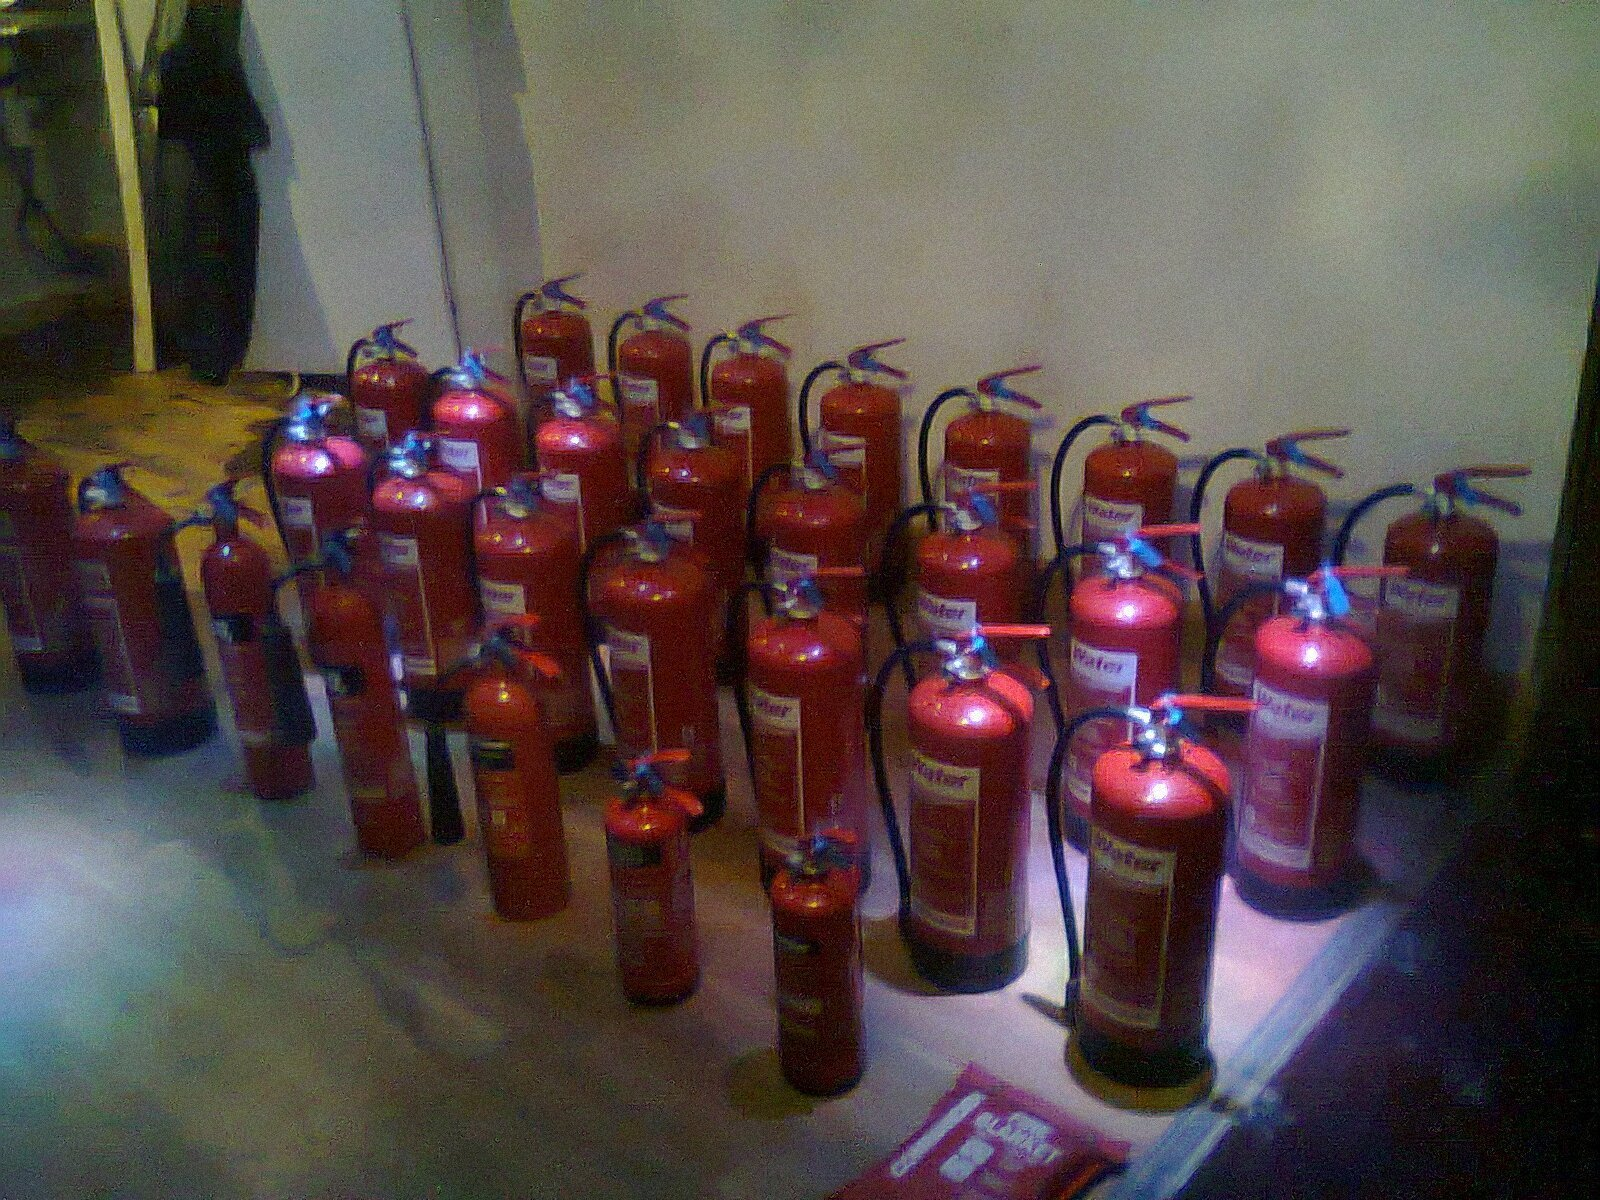 Fire Extinguisher Service & Maintenance - Annual Survey & Certificate to meet BS 5306-3: 2017 - Reading, Berkshire